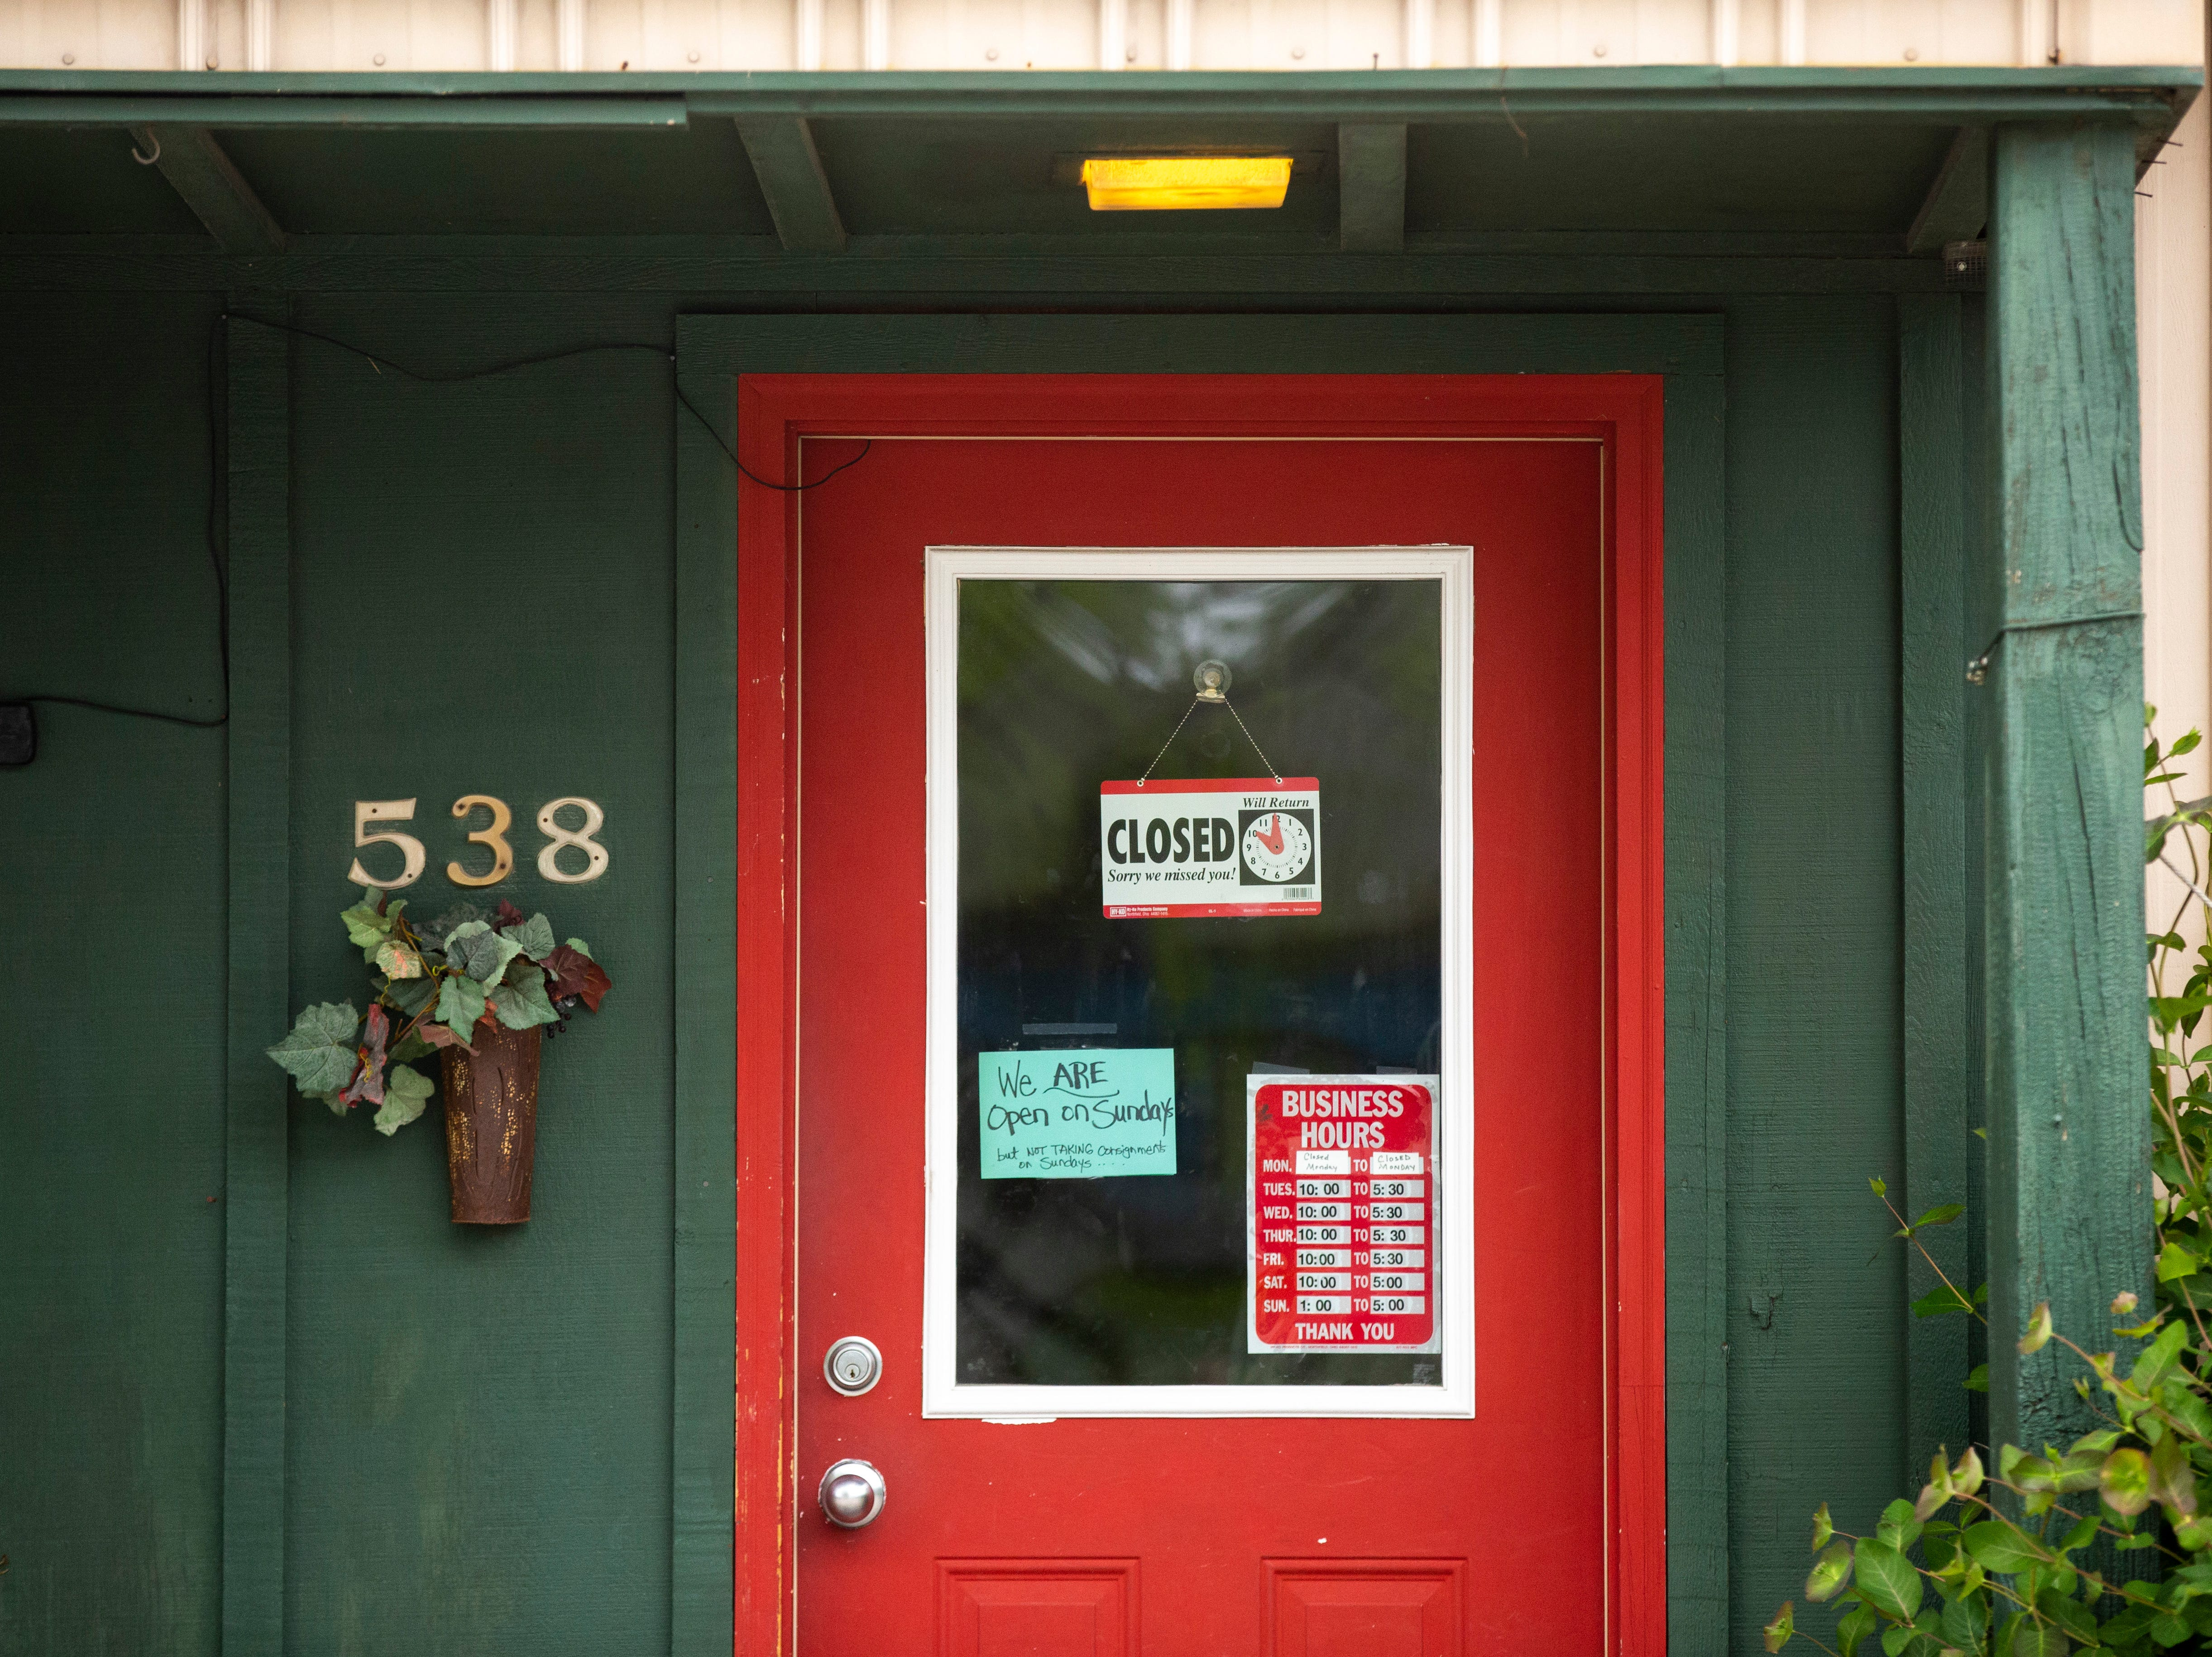 A door displaying hours at The Second Act is pictured, Thursday, May 9, 2019, at 538 Olympic Court, south of Highway 6 in Iowa City, Iowa.